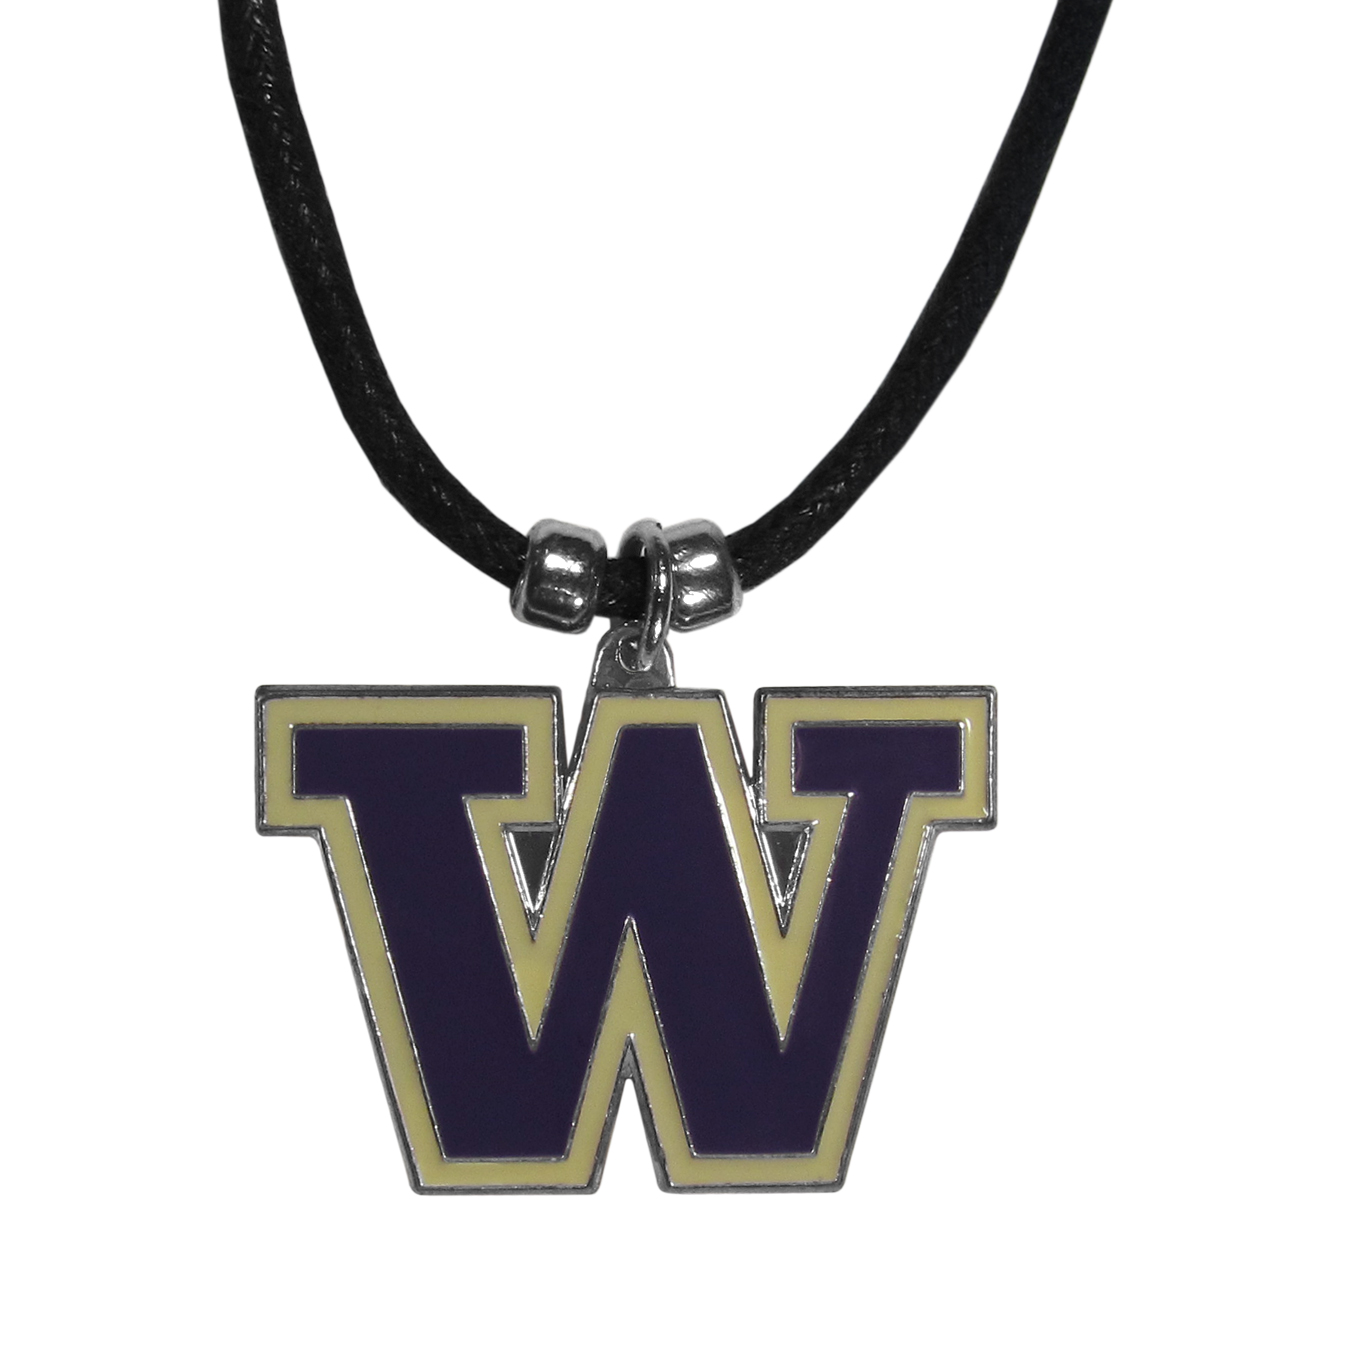 Washington Huskies Cord Necklace - This classic style cotton cord necklace features an extra large Washington Huskies pendant on a 21 inch cord.